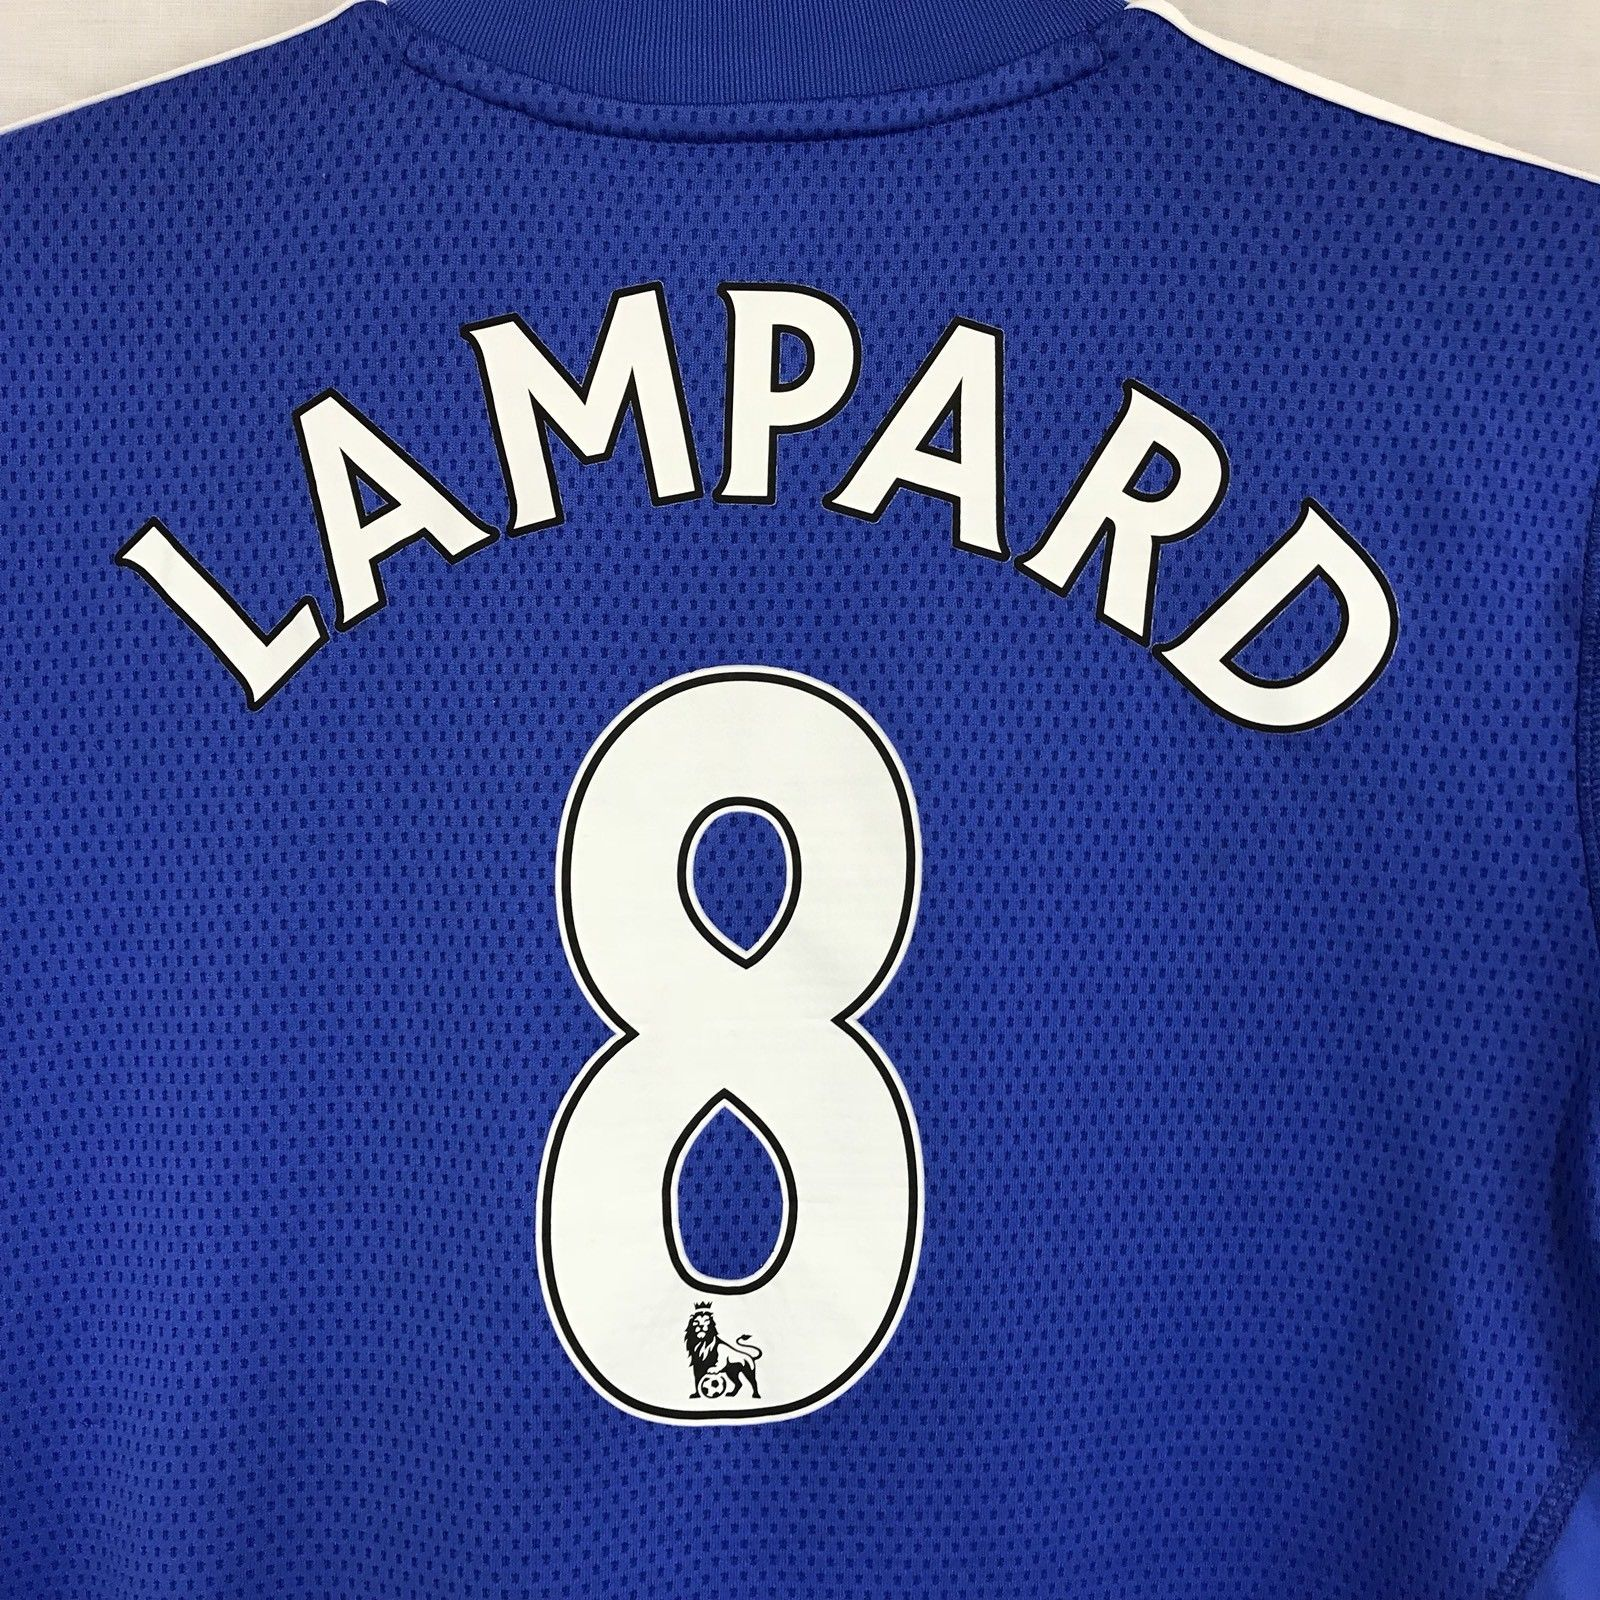 on sale 91b60 a67a8 Chelsea Frank Lampard 8 Football Shirt 2009/10 Children's 11/12 Years Adidas